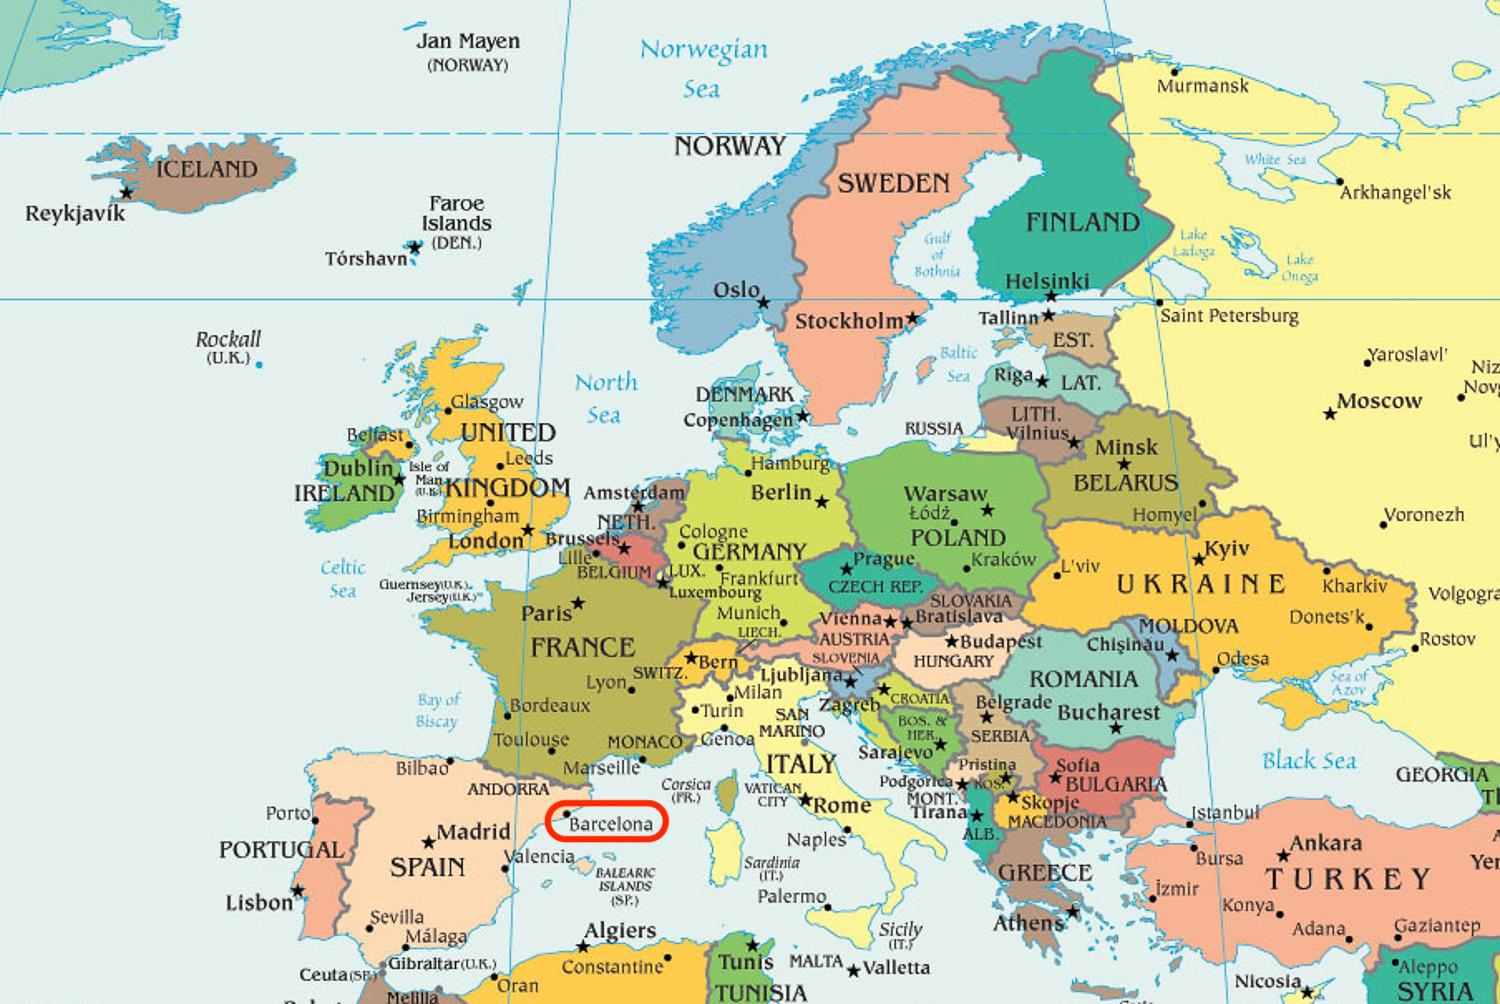 Spain Map Of Europe.Barcelona Map Europe Map Of Spain Showing Barcelona Catalonia Spain